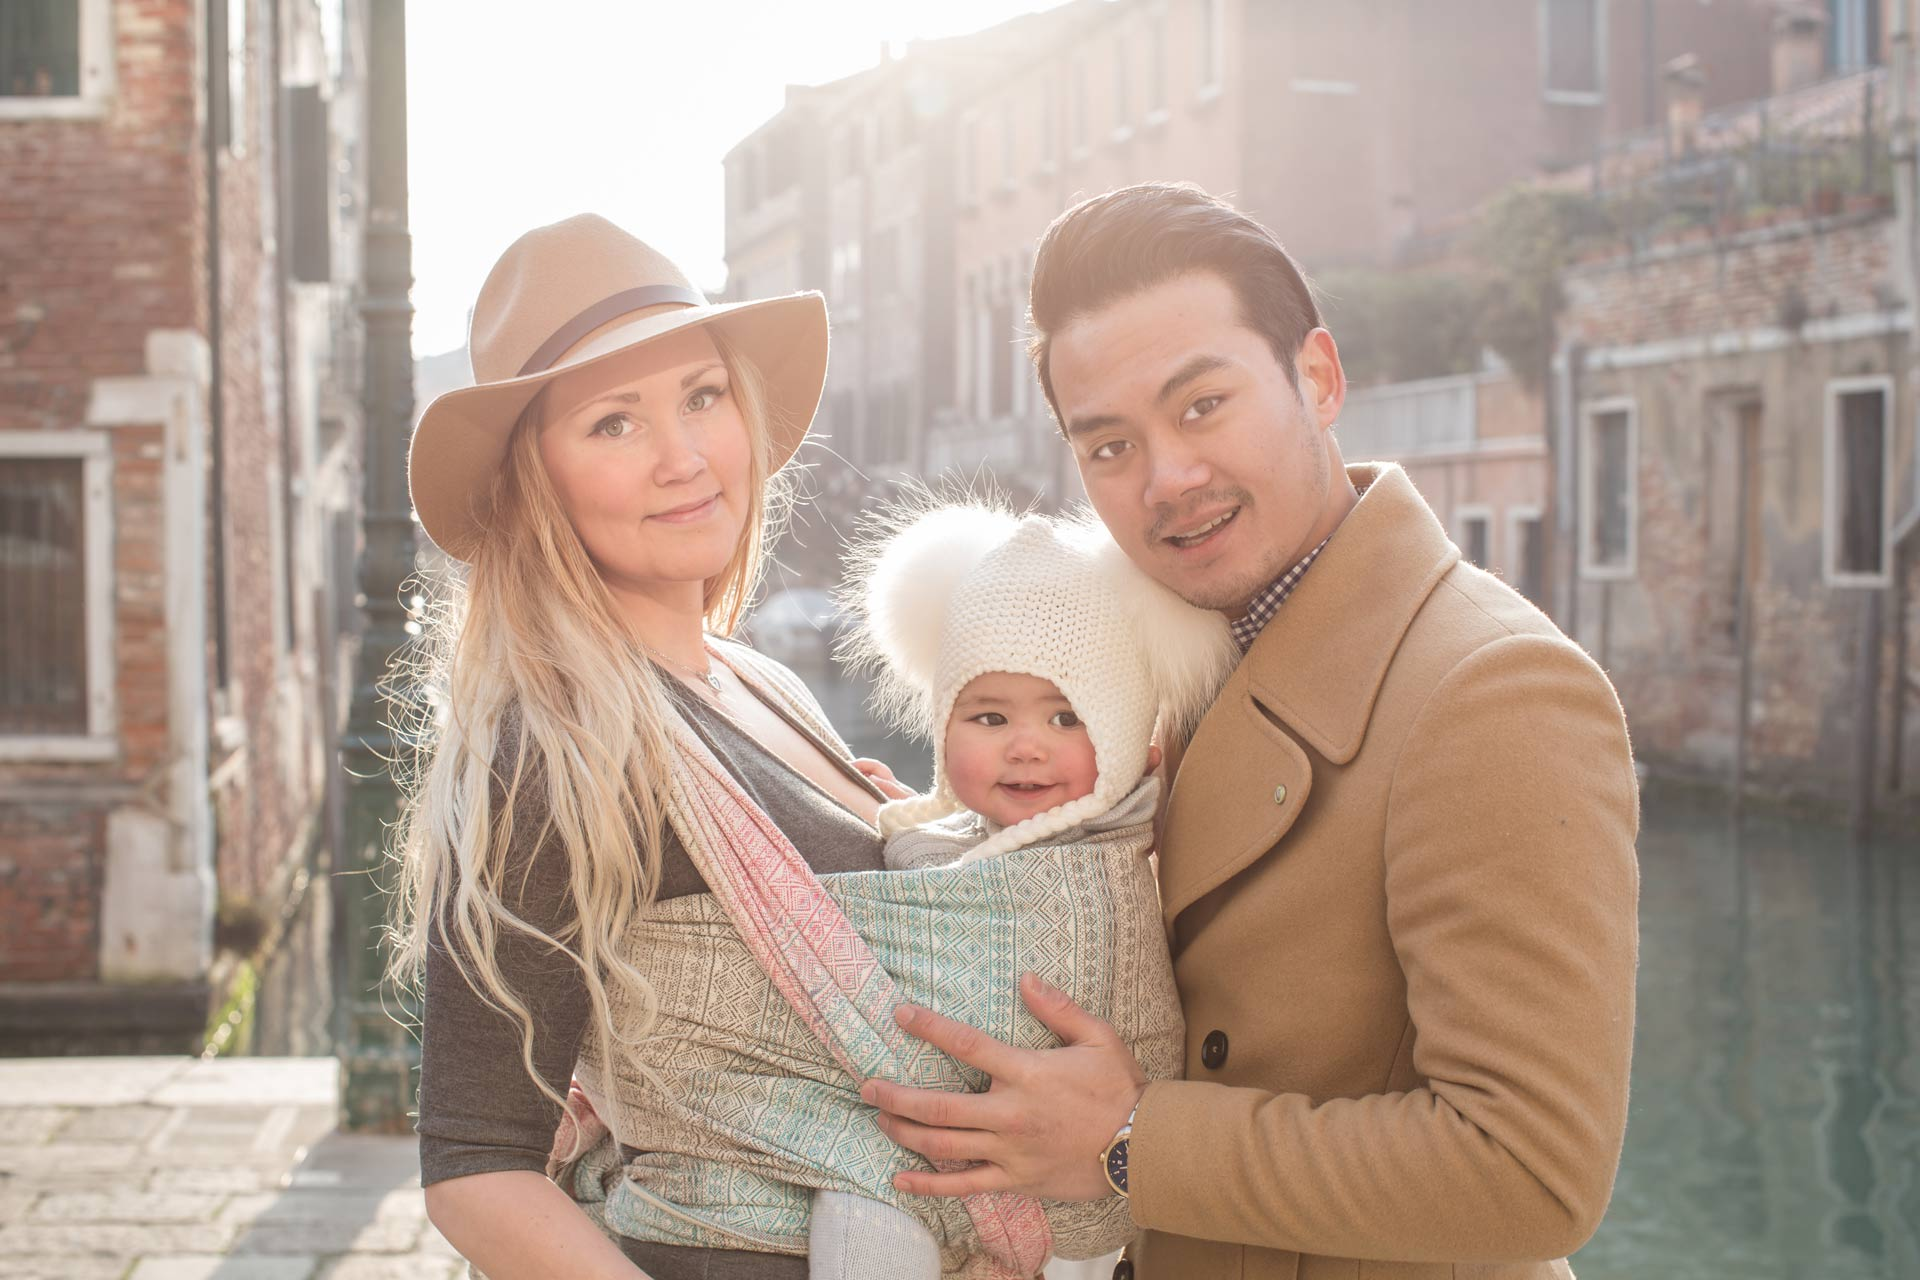 Minna-Stella-Øyvind-family-portrait-photo-shooting-Dorsoduro-Venezia-Venice